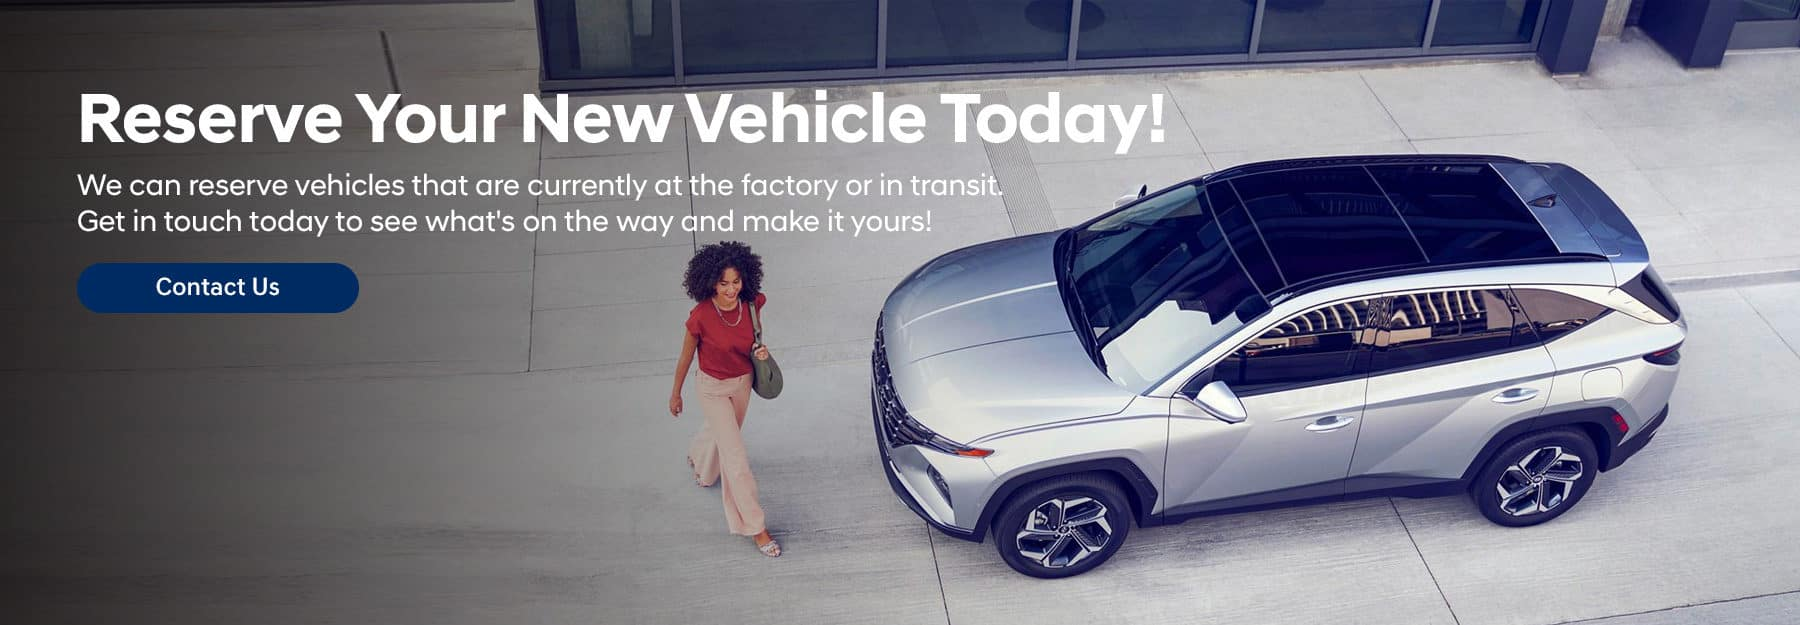 Reserve Your New Vehicle Today! Subtext: We can reserve vehicles that are currently at the factory or in transit. Get in touch today to see what's on the way and make it yours!